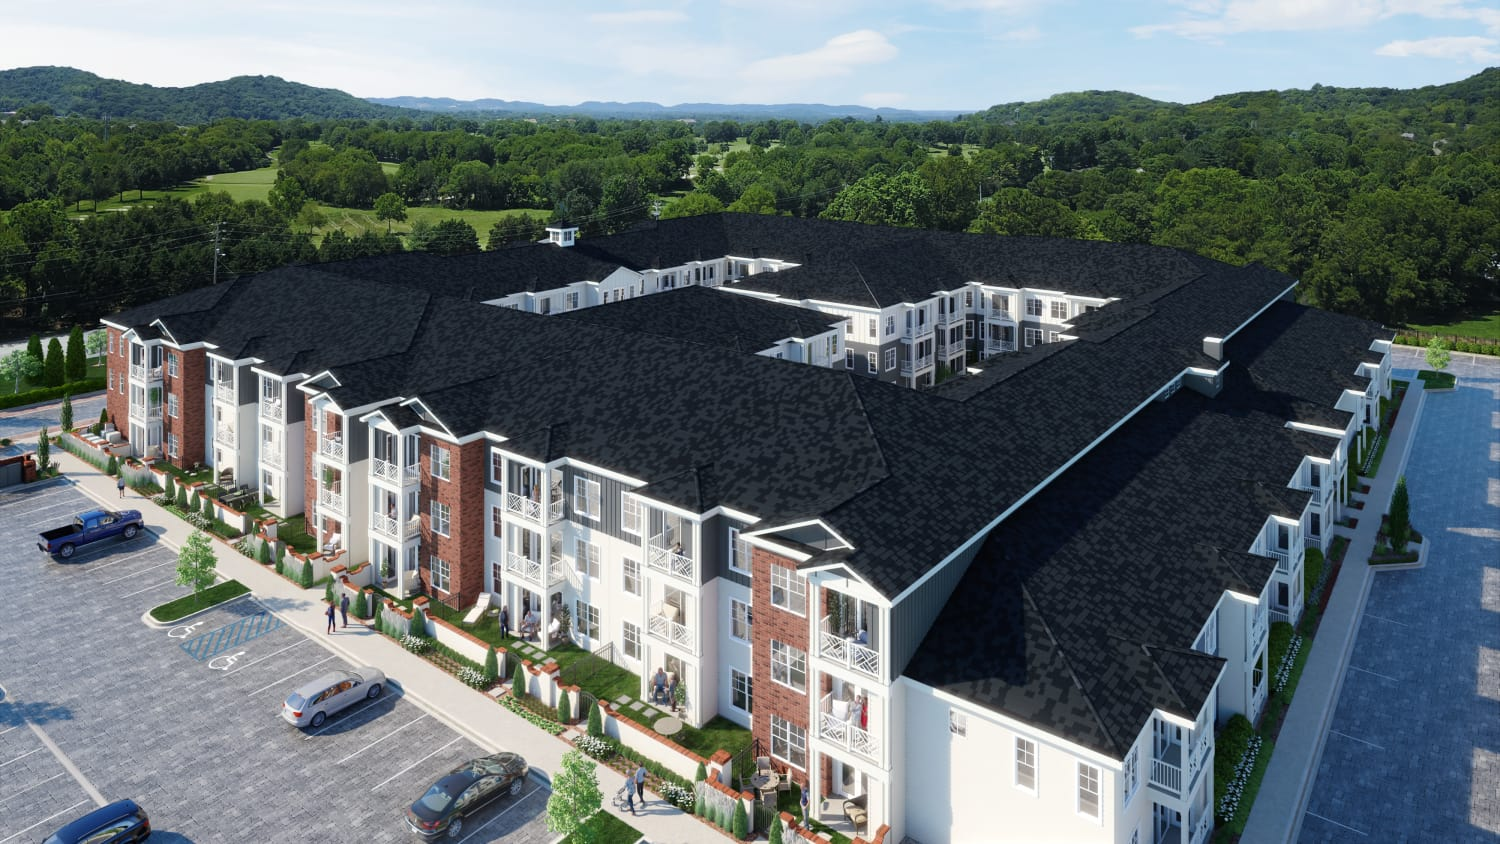 Aerial view of Avenida Cool Springs senior living apartments in Franklin, Tennessee